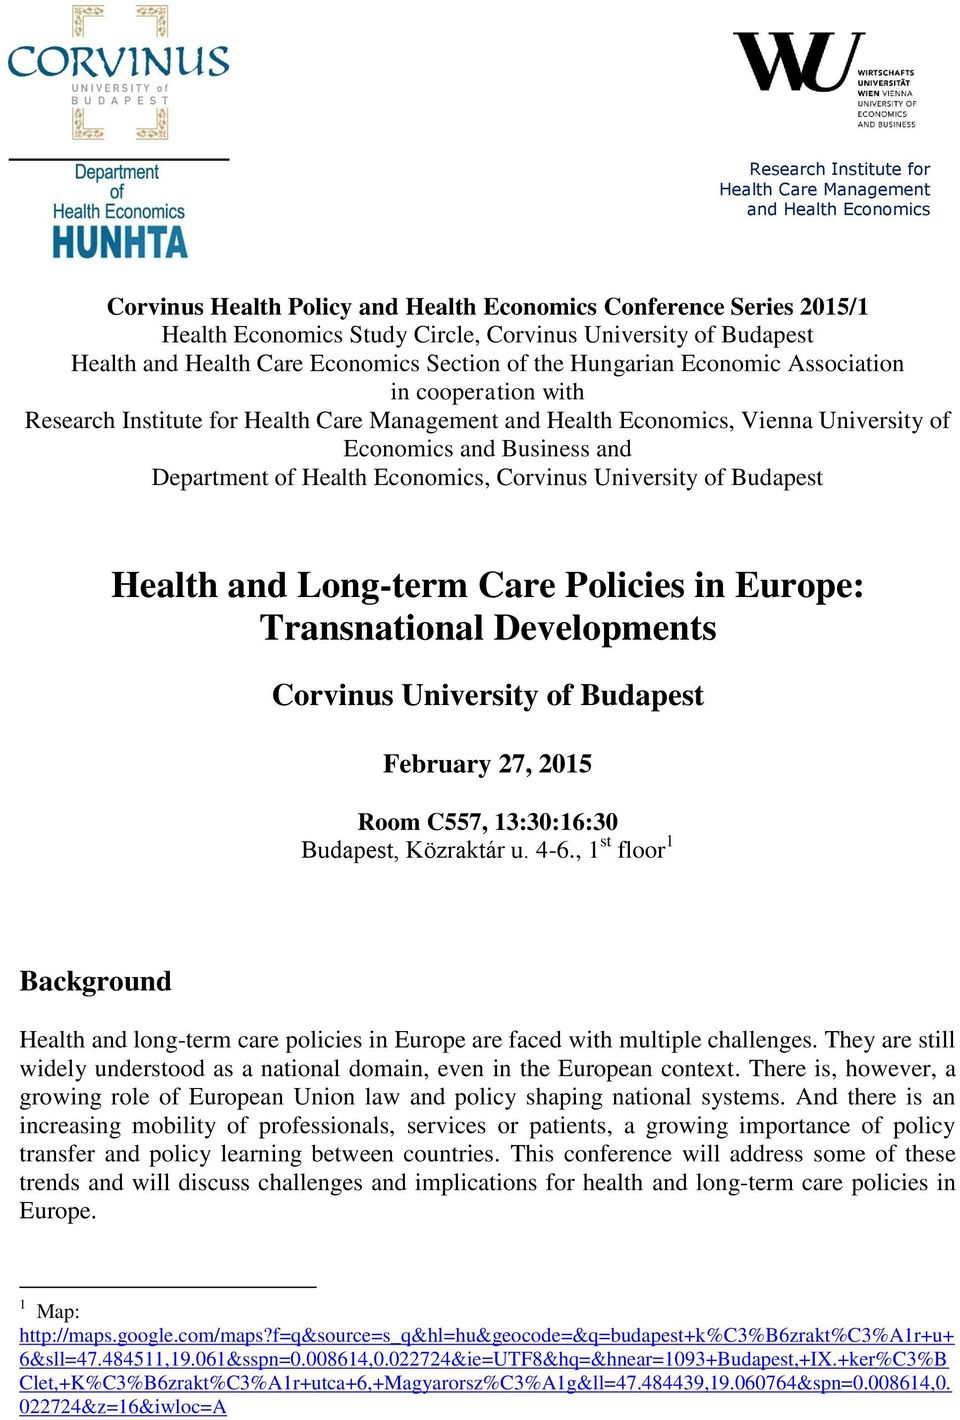 Department of Health Economics, Corvinus Health and Long-term Care Policies in Europe: Transnational Developments Corvinus February 27, 2015 Room C557, 13:30:16:30 Budapest, Közraktár u. 4-6.